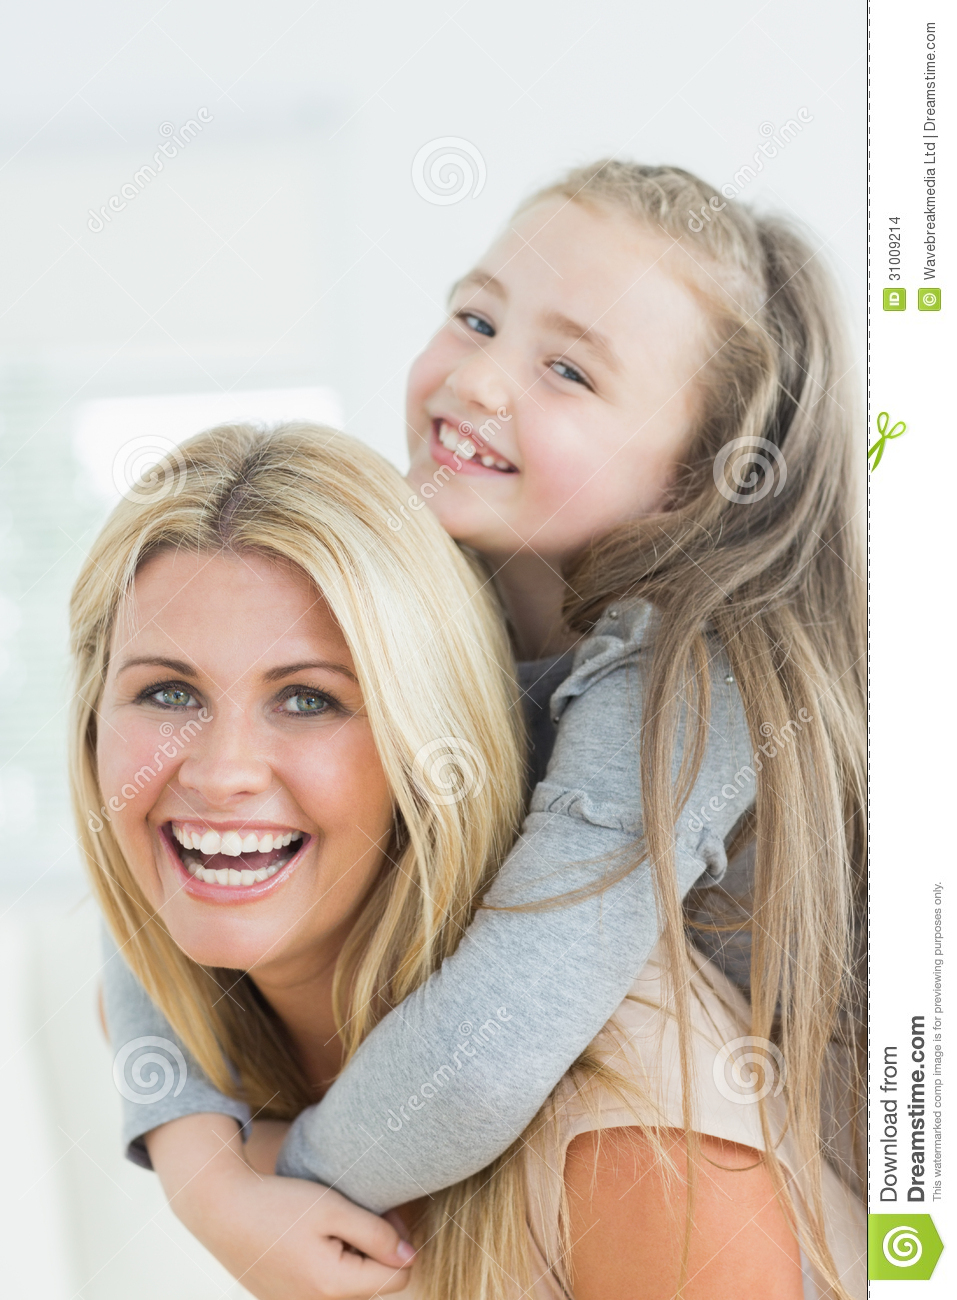 Mom And Daughter Bedroom Ideas: Laughing Mother And Daughter Stock Images